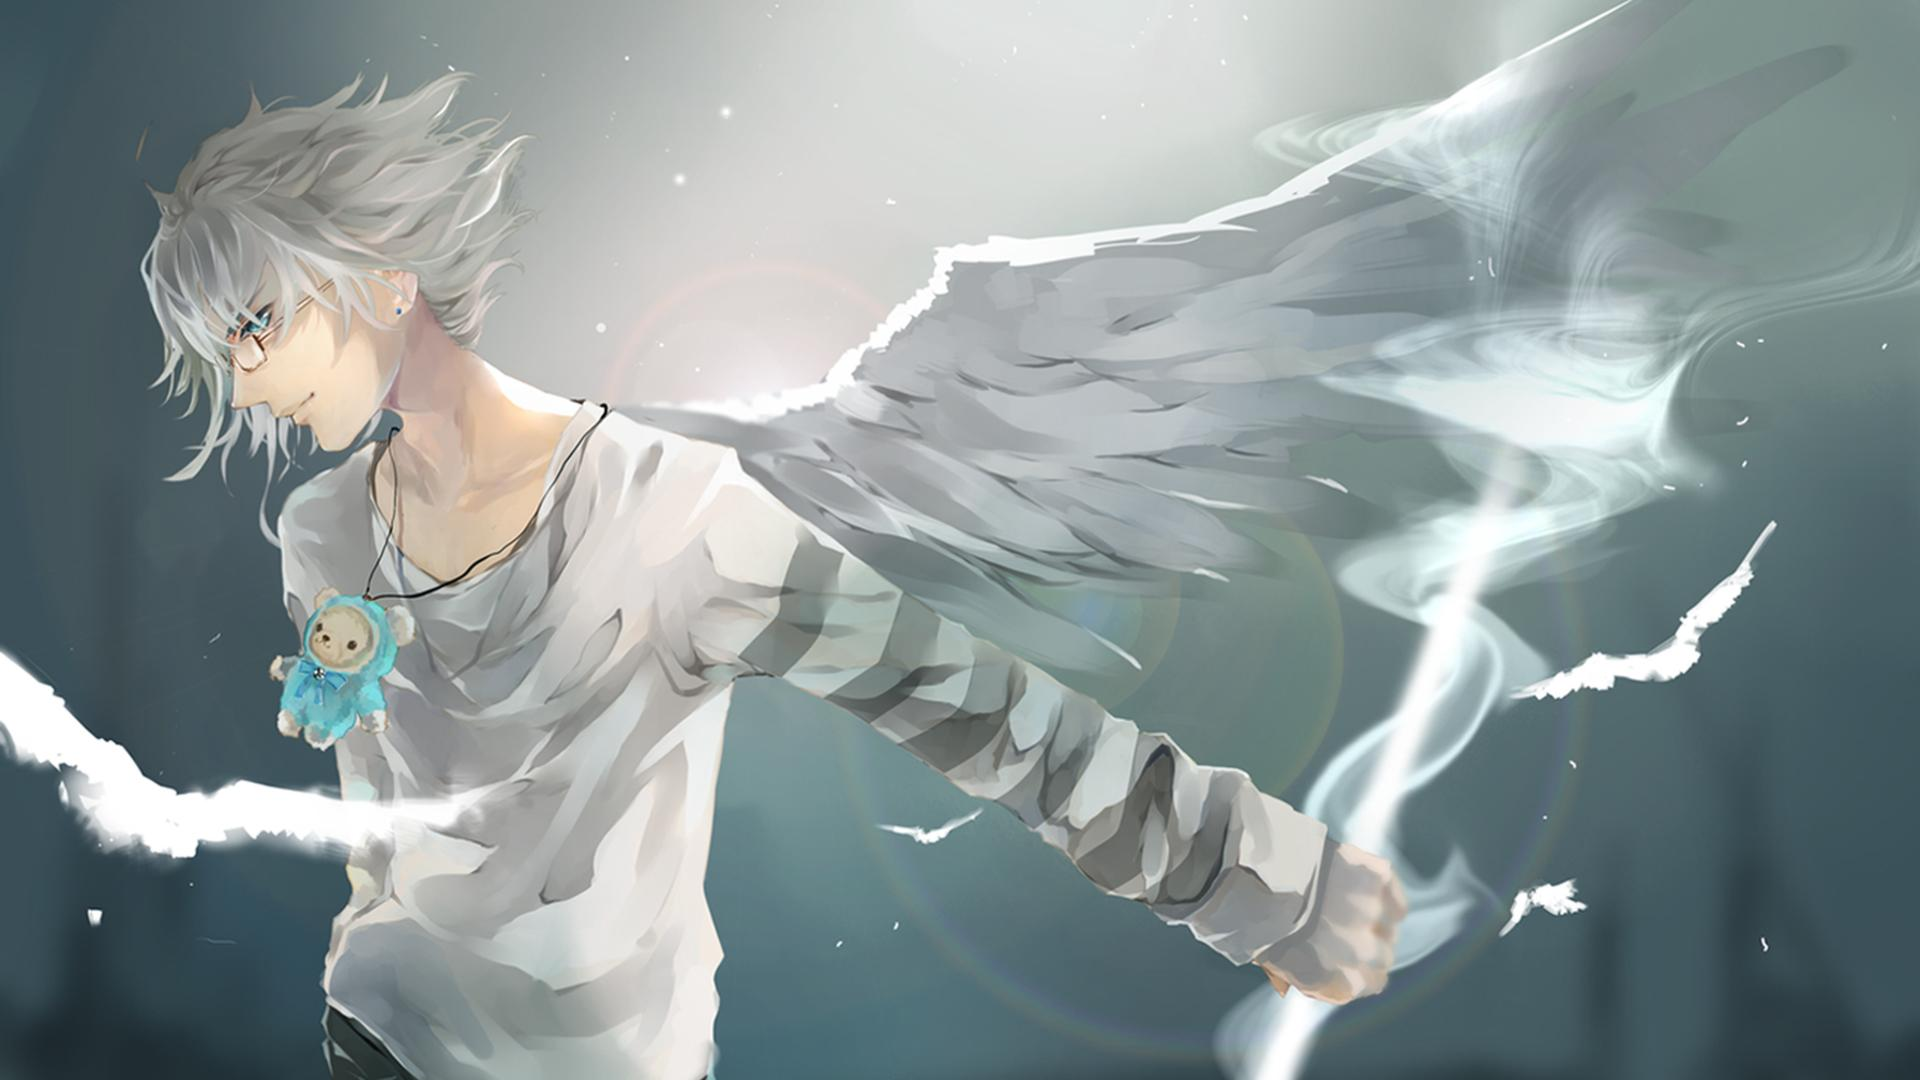 Aesthetic Anime 1920x1080 Grey Wallpapers - Wallpaper Cave